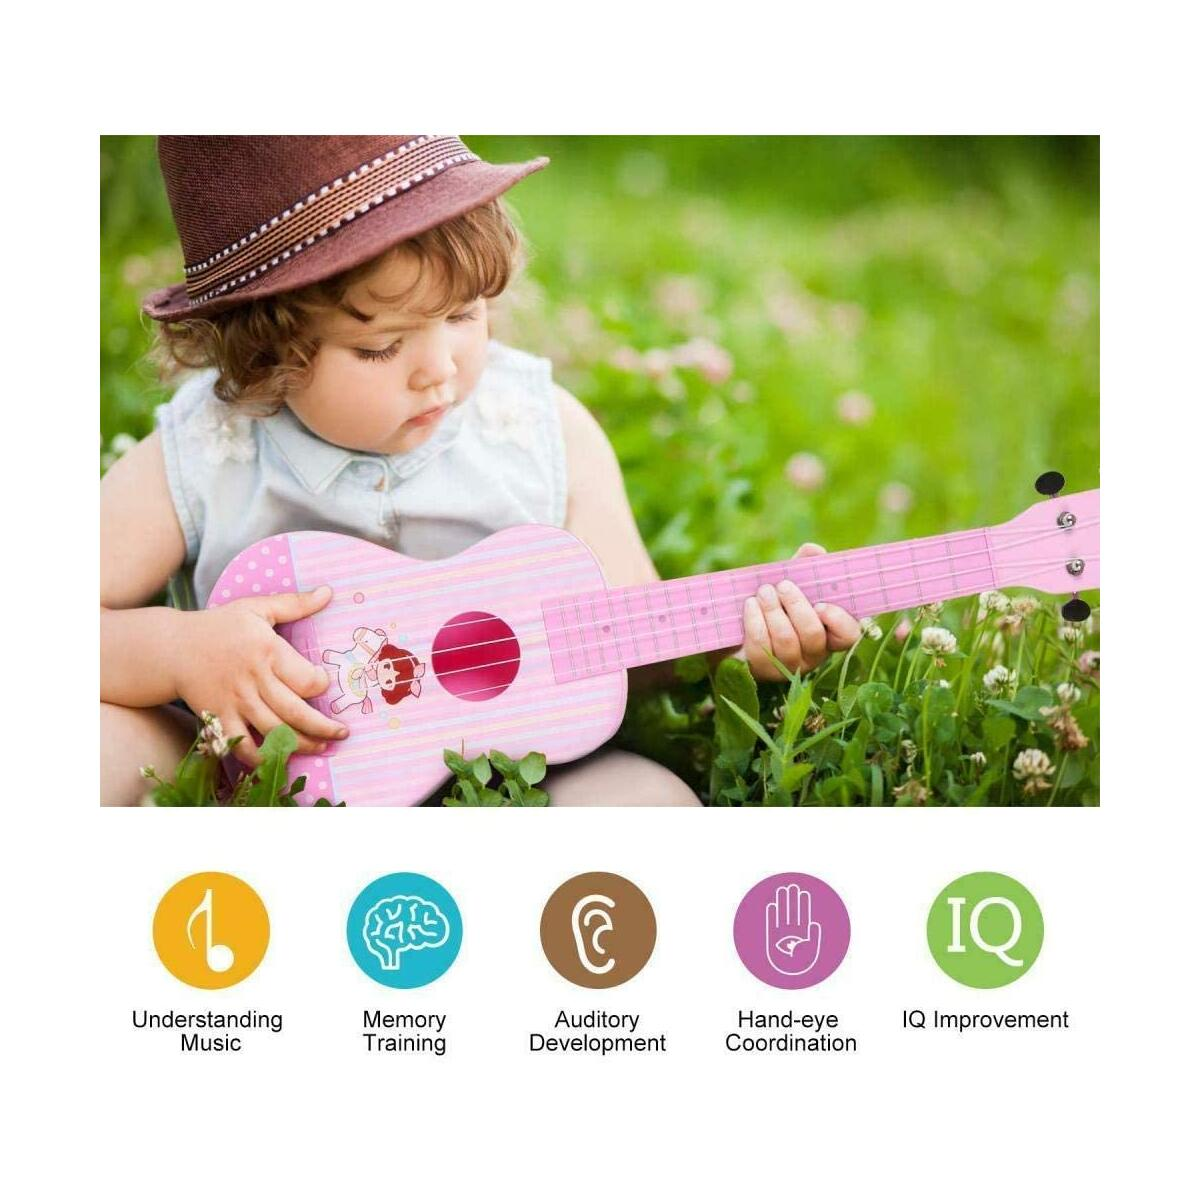 HANMUN Unicorn Musical Ukulele Guitar Toys - 23 Inch Pink Guitar with 4 Strings Musical Instruments Learning Educational Toys for Kids Children Adult Children (Pink)